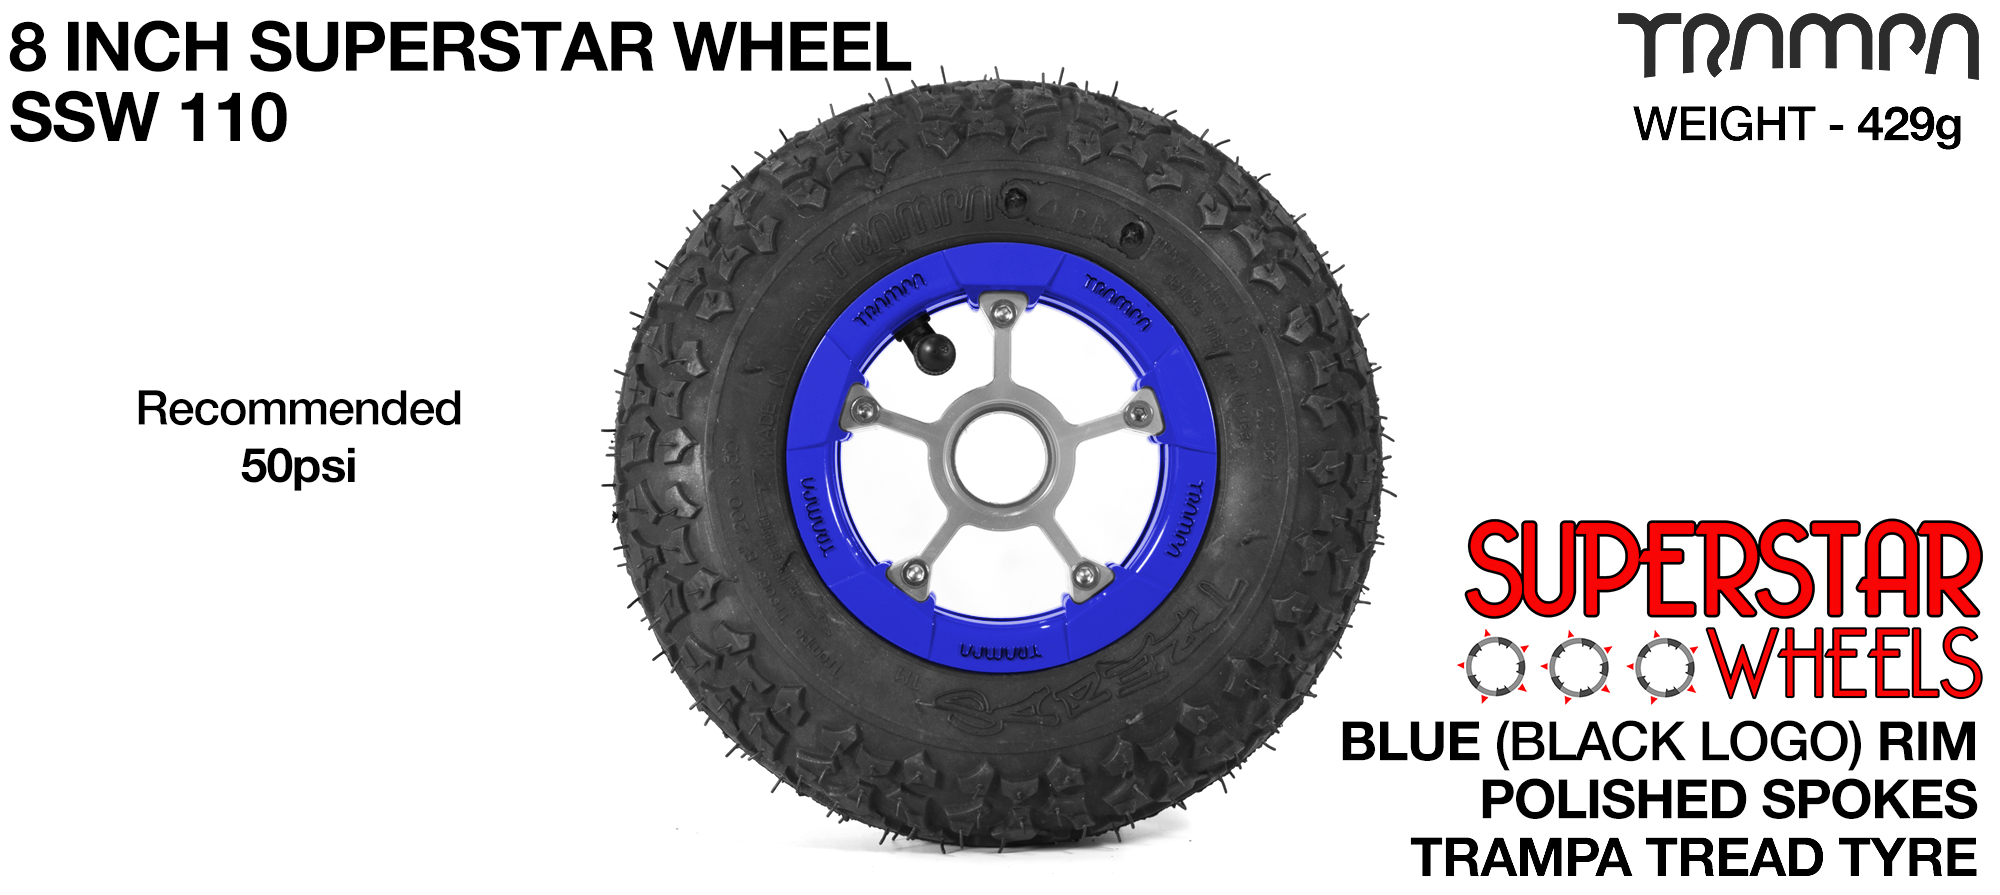 Superstar 8 inch wheels -  Blue & Black Logo Rim Silver Anodised spokes & TRAMPA TREAD 8 inch Tyre